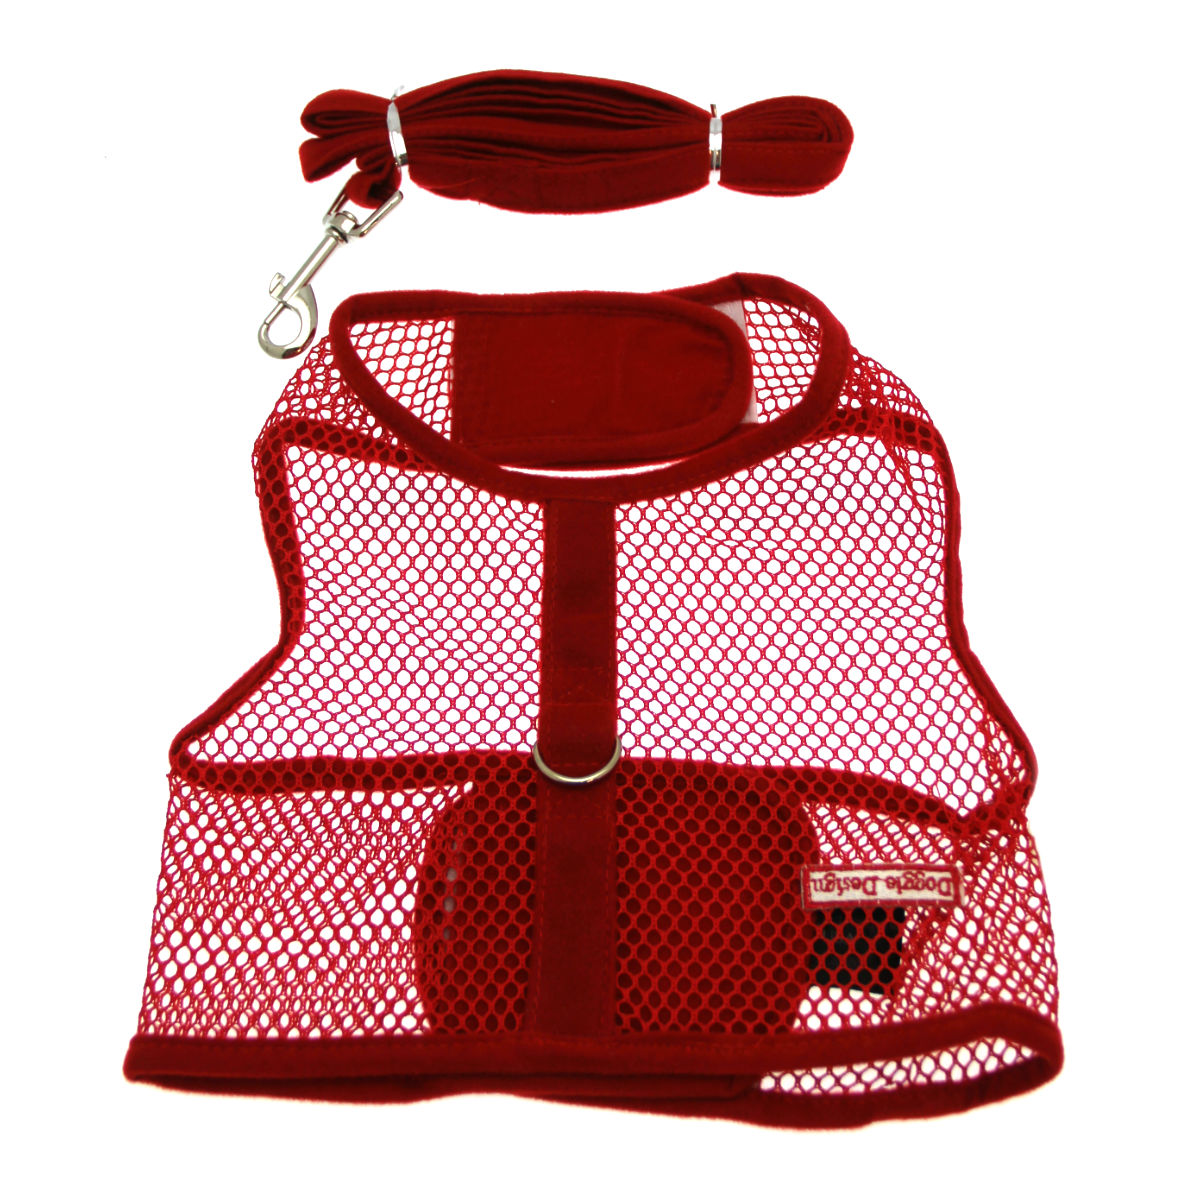 Netted Dog Harness with Leash - Red